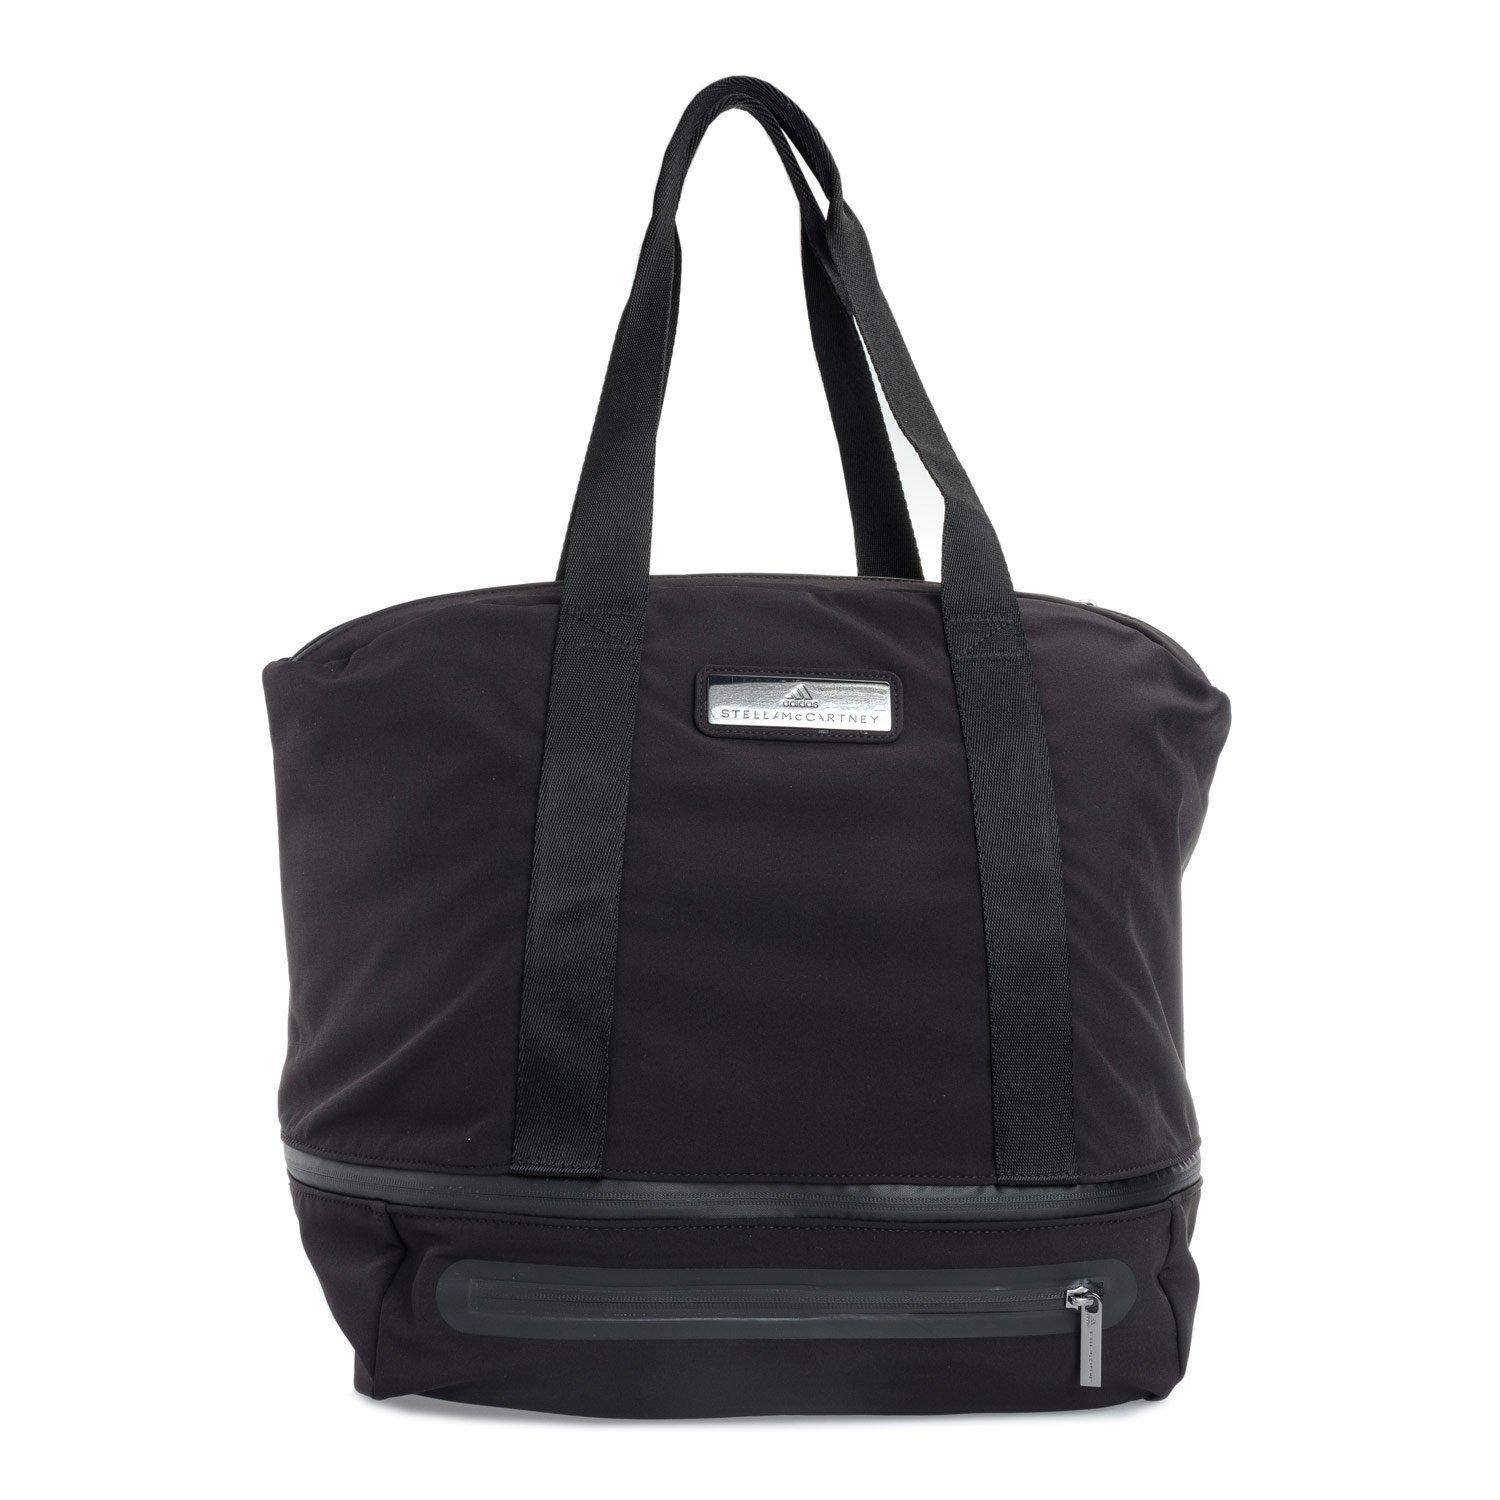 adidas by Stella McCartney Large Iconic Bag in Black/Night Steel Black/Negro/Ngtste/Icegry Nicht zutreffend CE2492